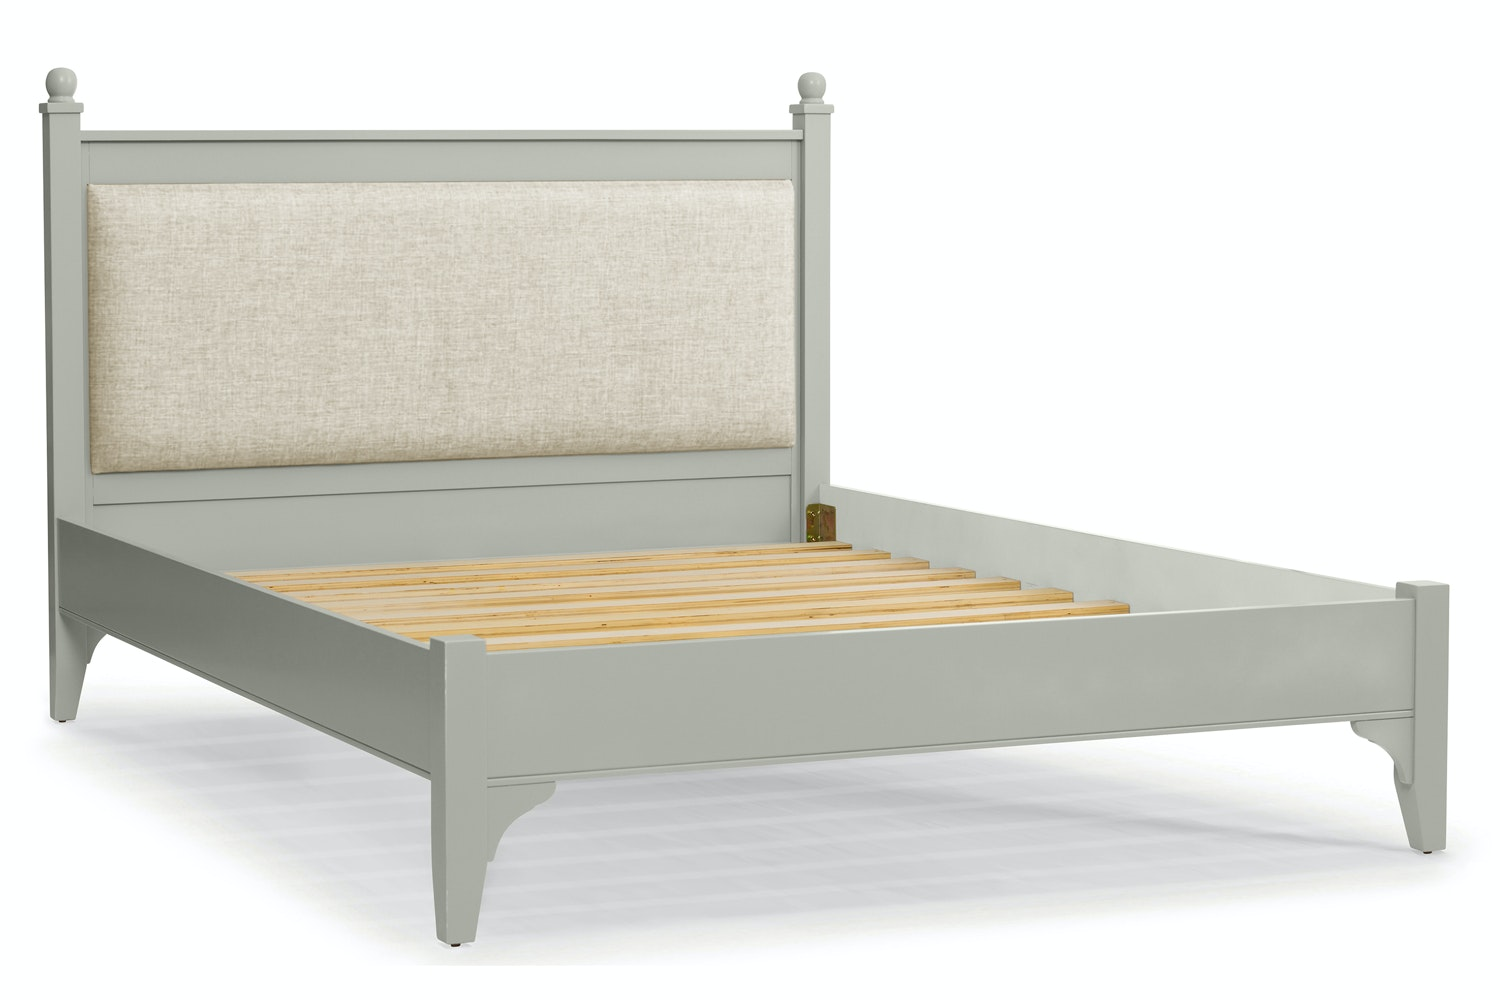 Lynwood Bed Frame | 6ft | Colourtrend with Fabric options